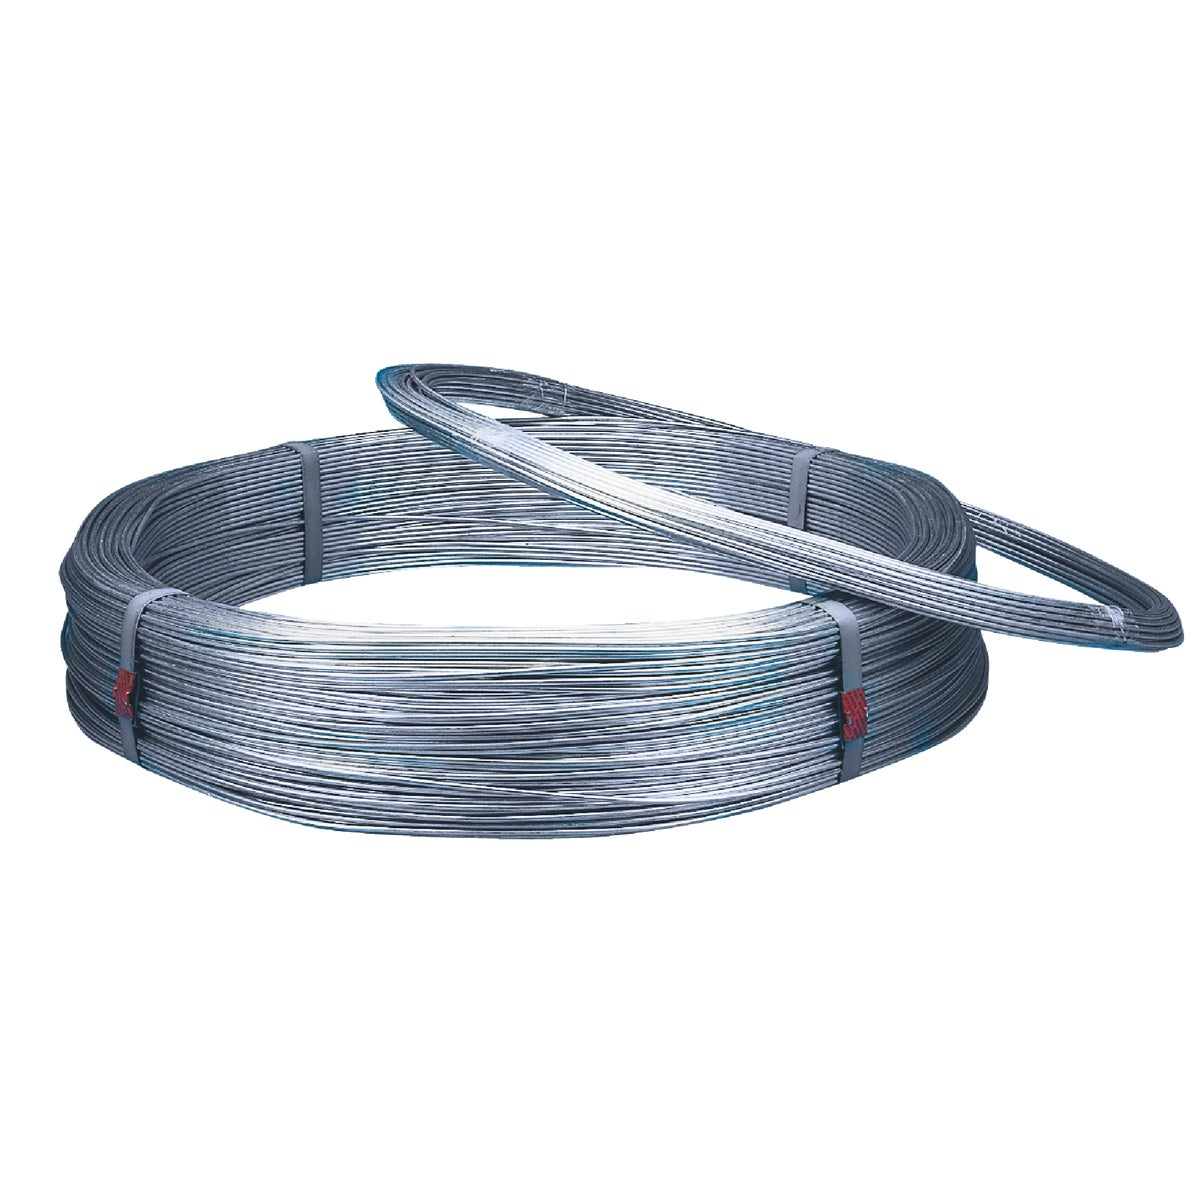 4000' SMOOTH COIL WIRE - 118141 by Bekaert Corp